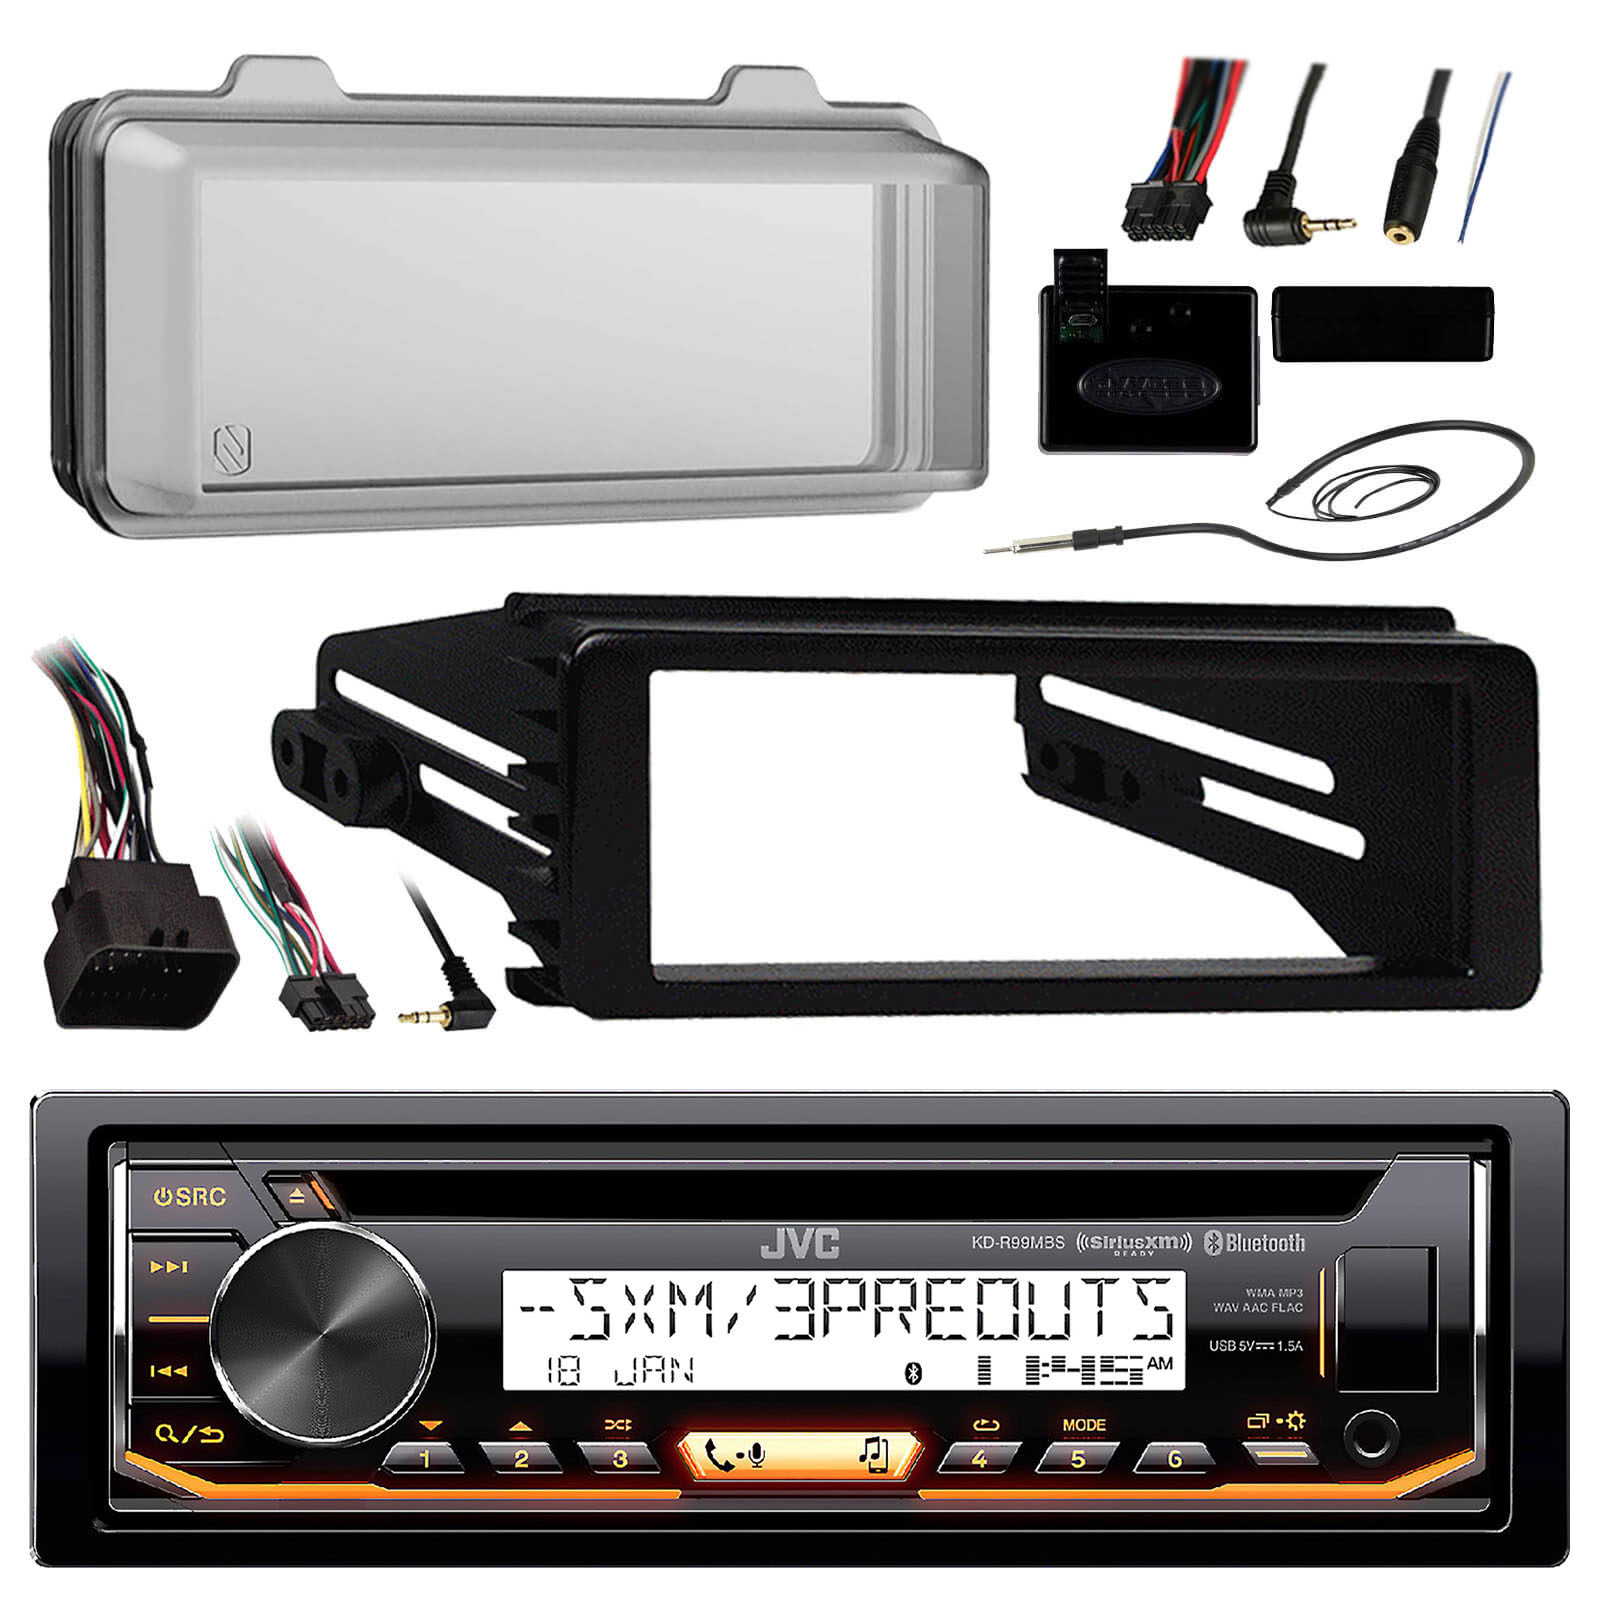 JVC KDR99MBS Marine Radio Stereo Receiver For 1998-2013 Harley Davidson Touring Flht Flhx Flhtc Bundle With Metra Adapter Dash Kit + Weathershield Cover + Handle Bar Control + Enrock Wire Antenna